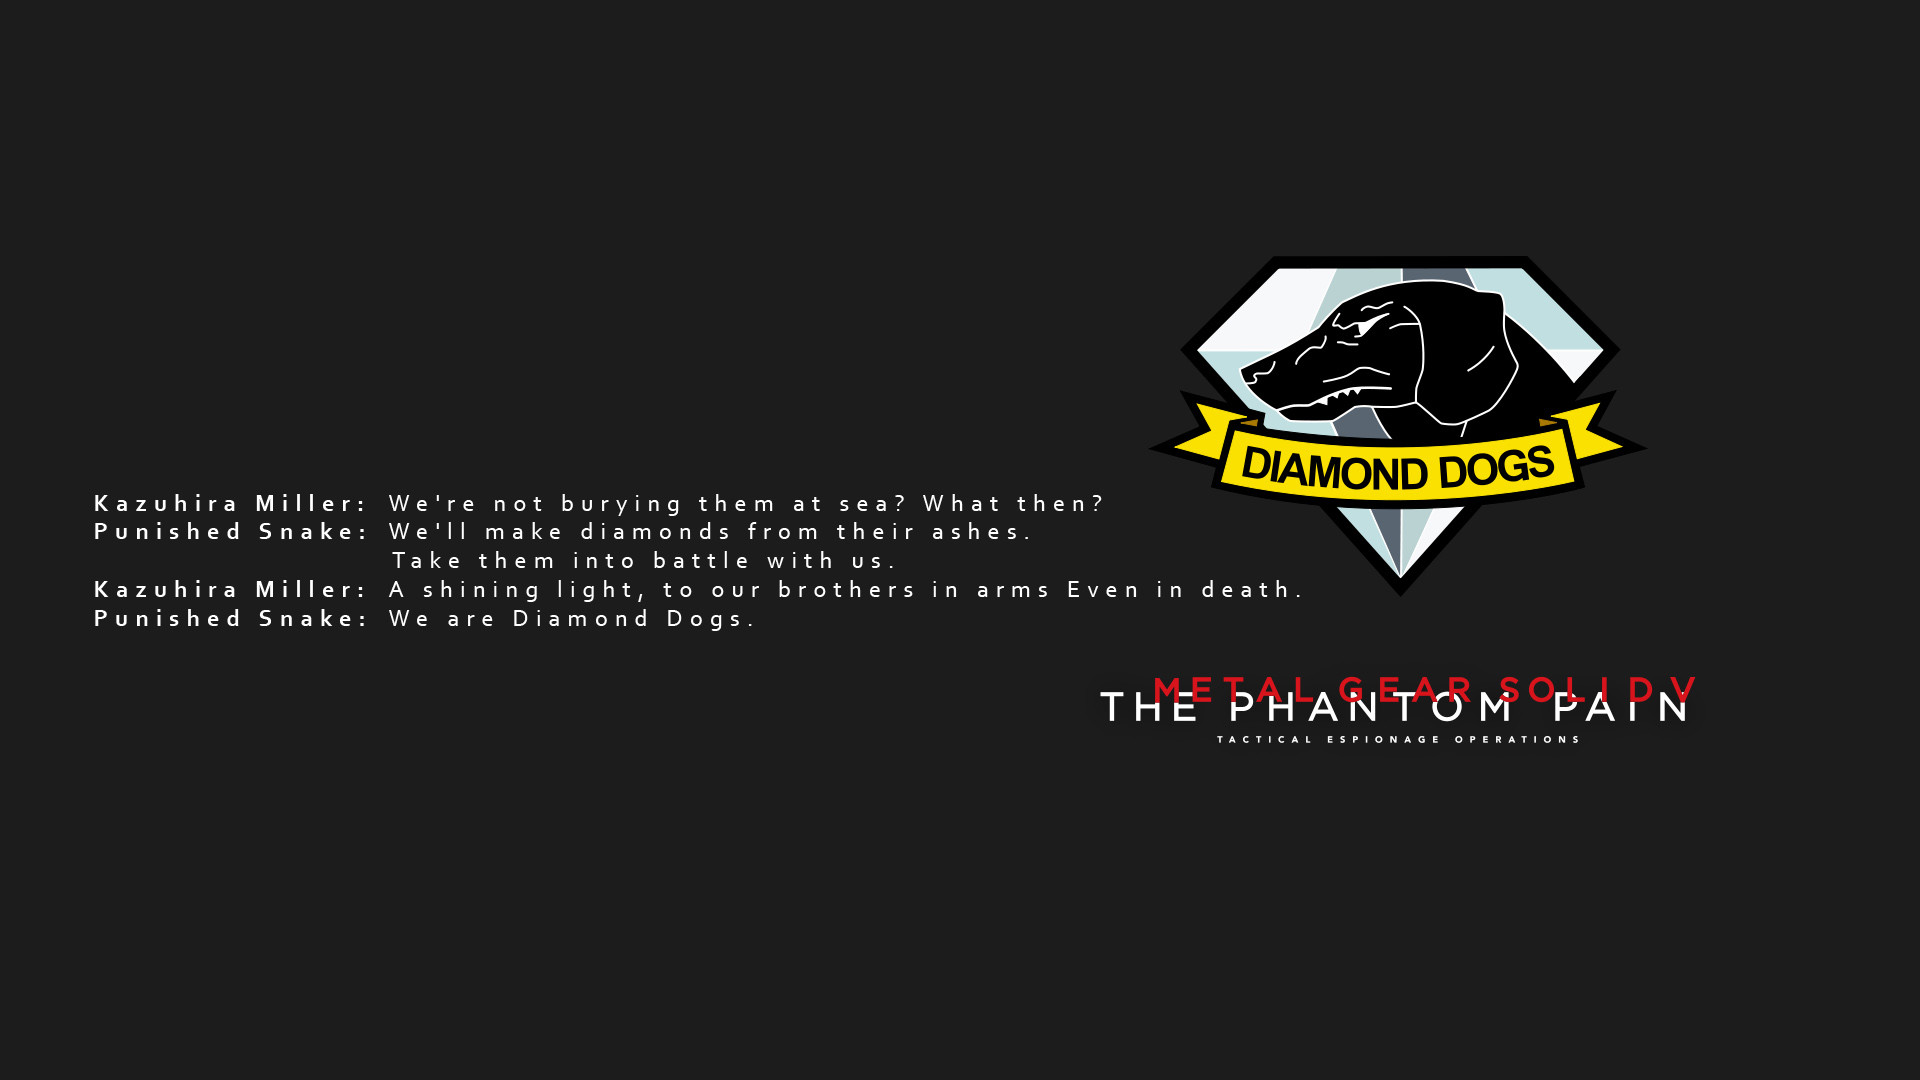 MGS5 quote Wallpaper by BeastyBeauty MGS5 quote Wallpaper by BeastyBeauty